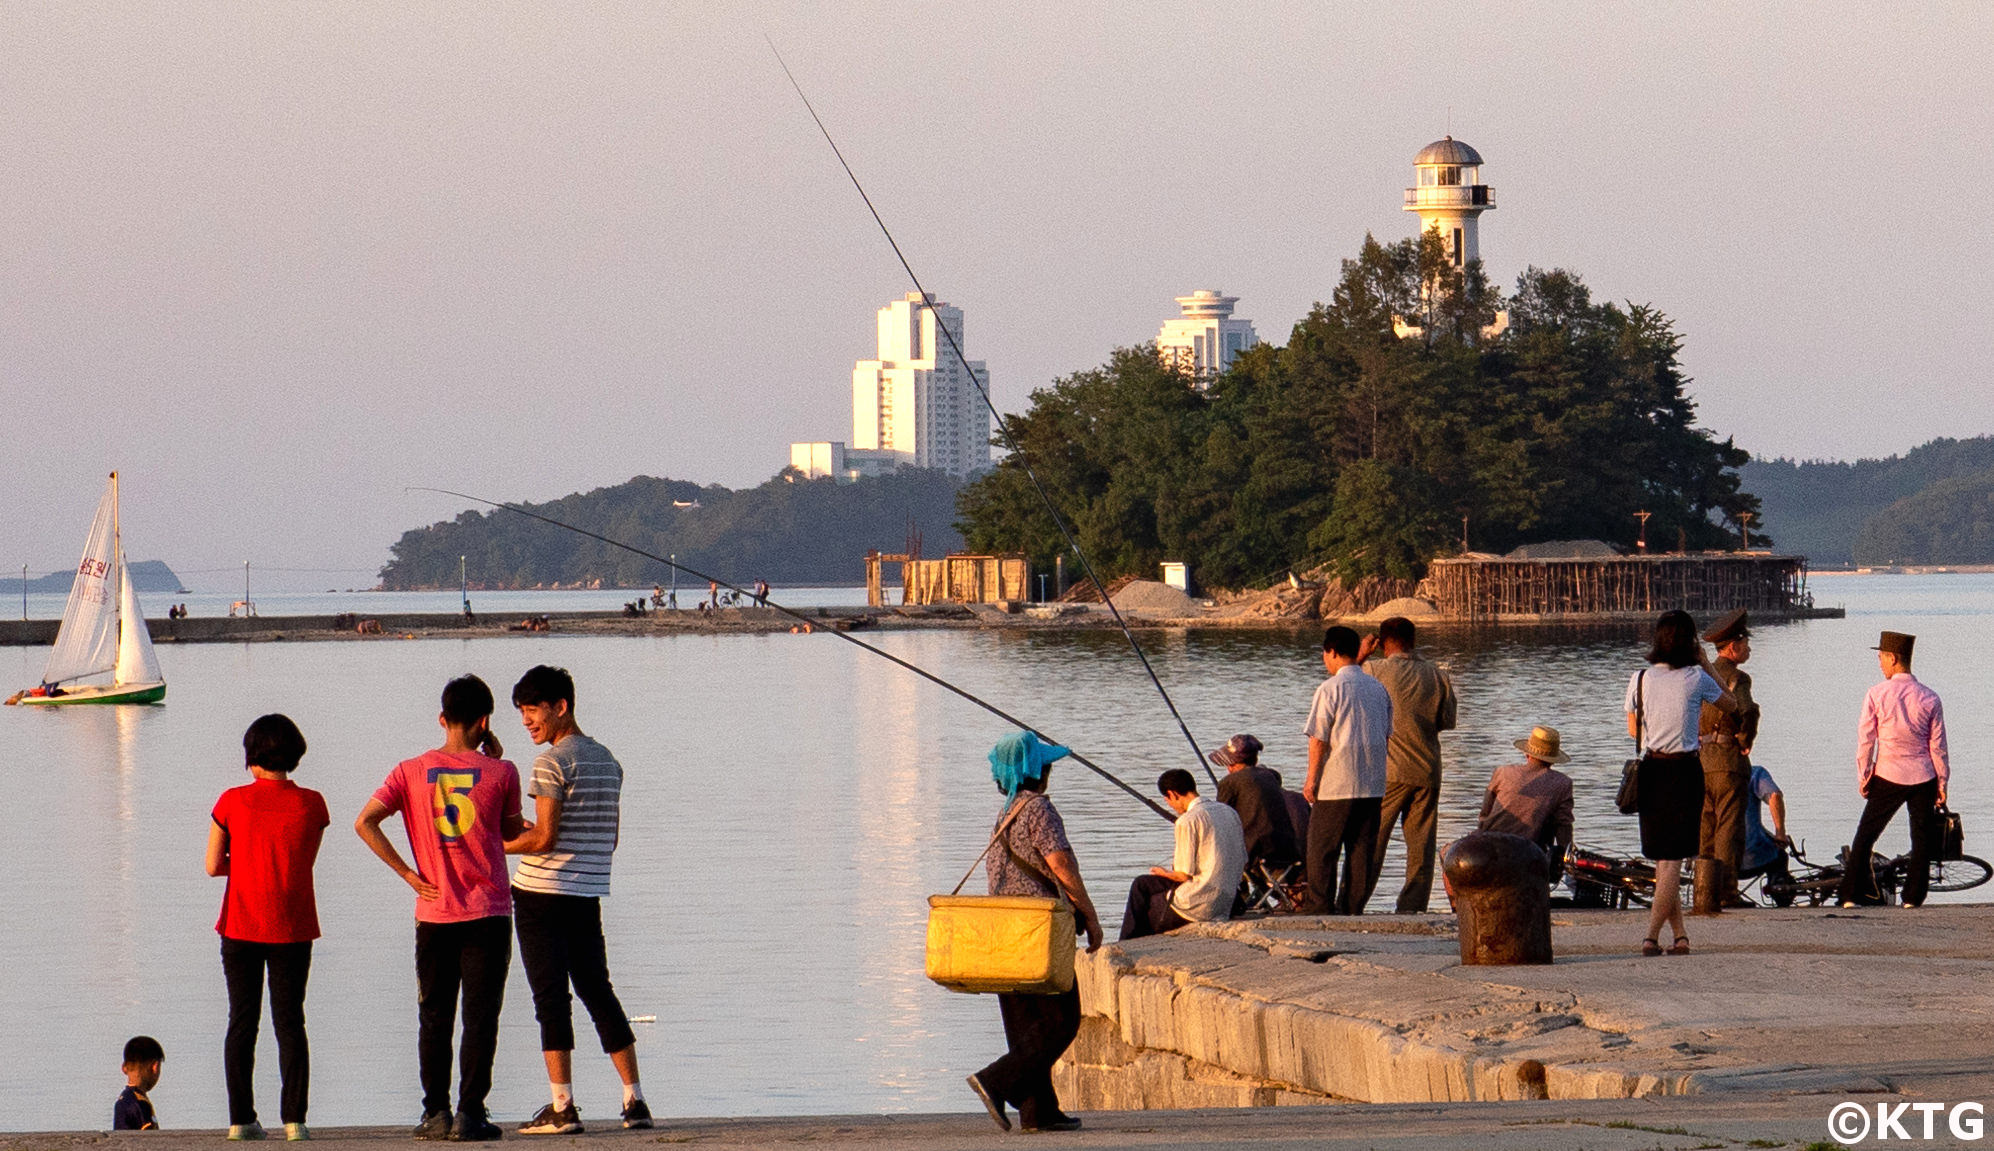 Walk by the port in Wonsan, North Korea (DPRK) with KTG Tours. You can see Jangdok islet & lighthouse in the background